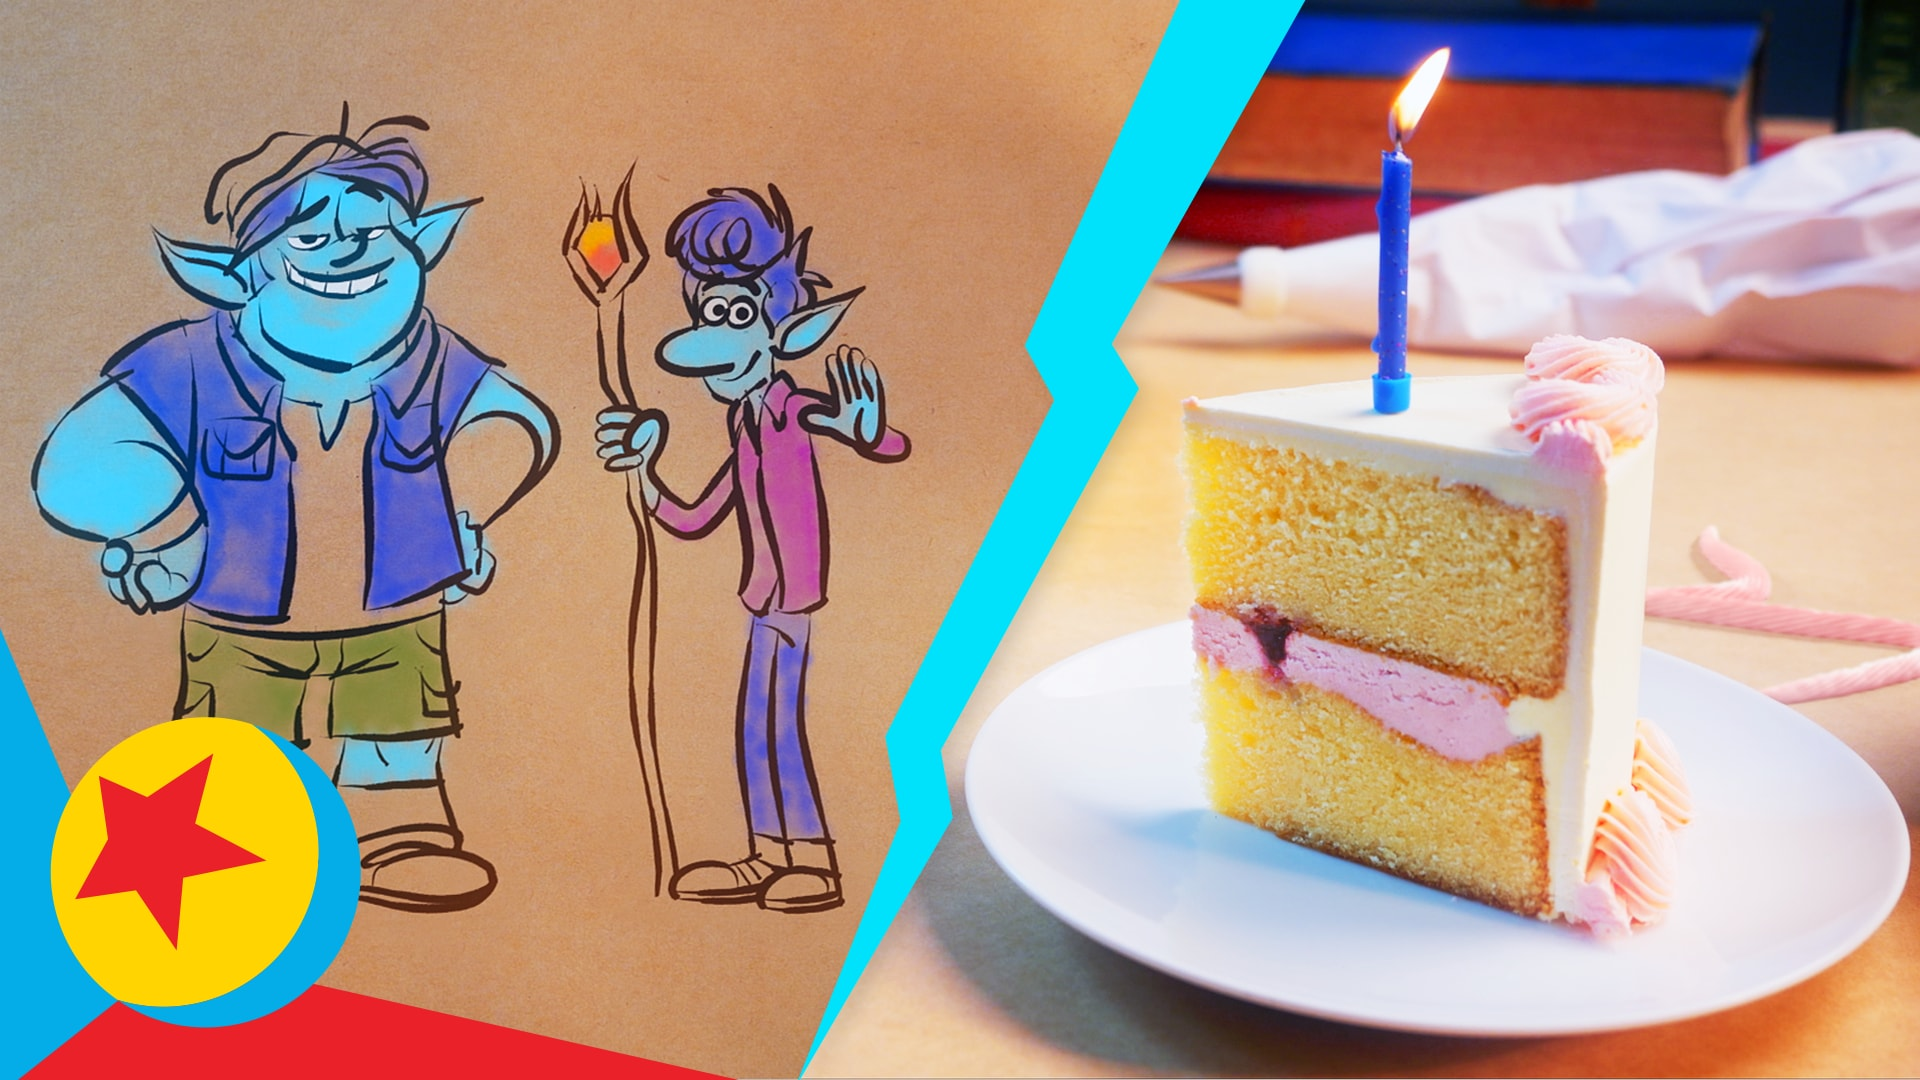 Venture Onward to Deliciousness With This Pixar-Inspired Cooking Video!